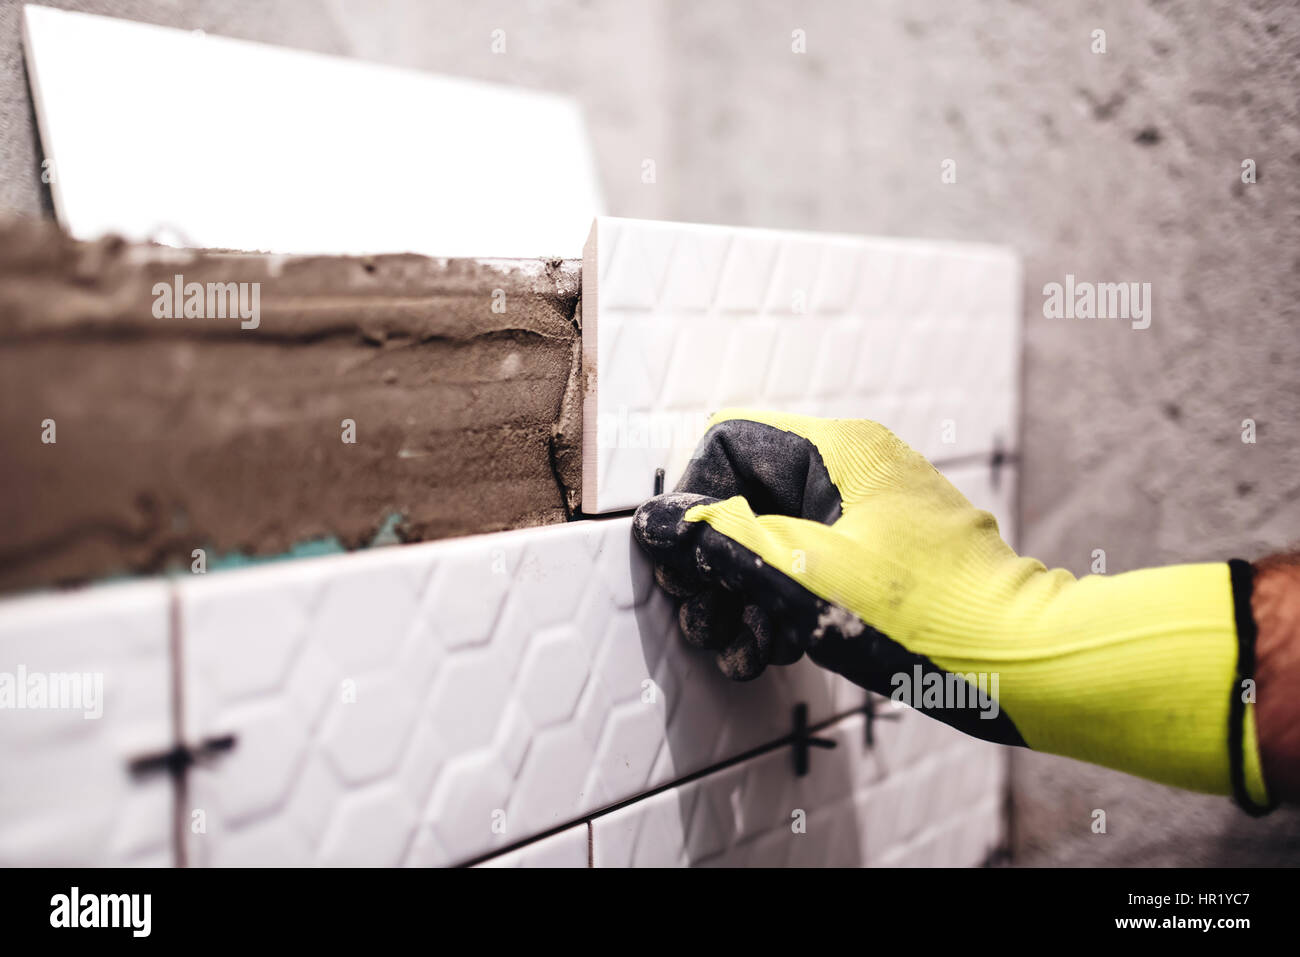 handy man, tiler applying ceramics with adhesive and using plastic spacers in interior design manufacturing - Stock Image